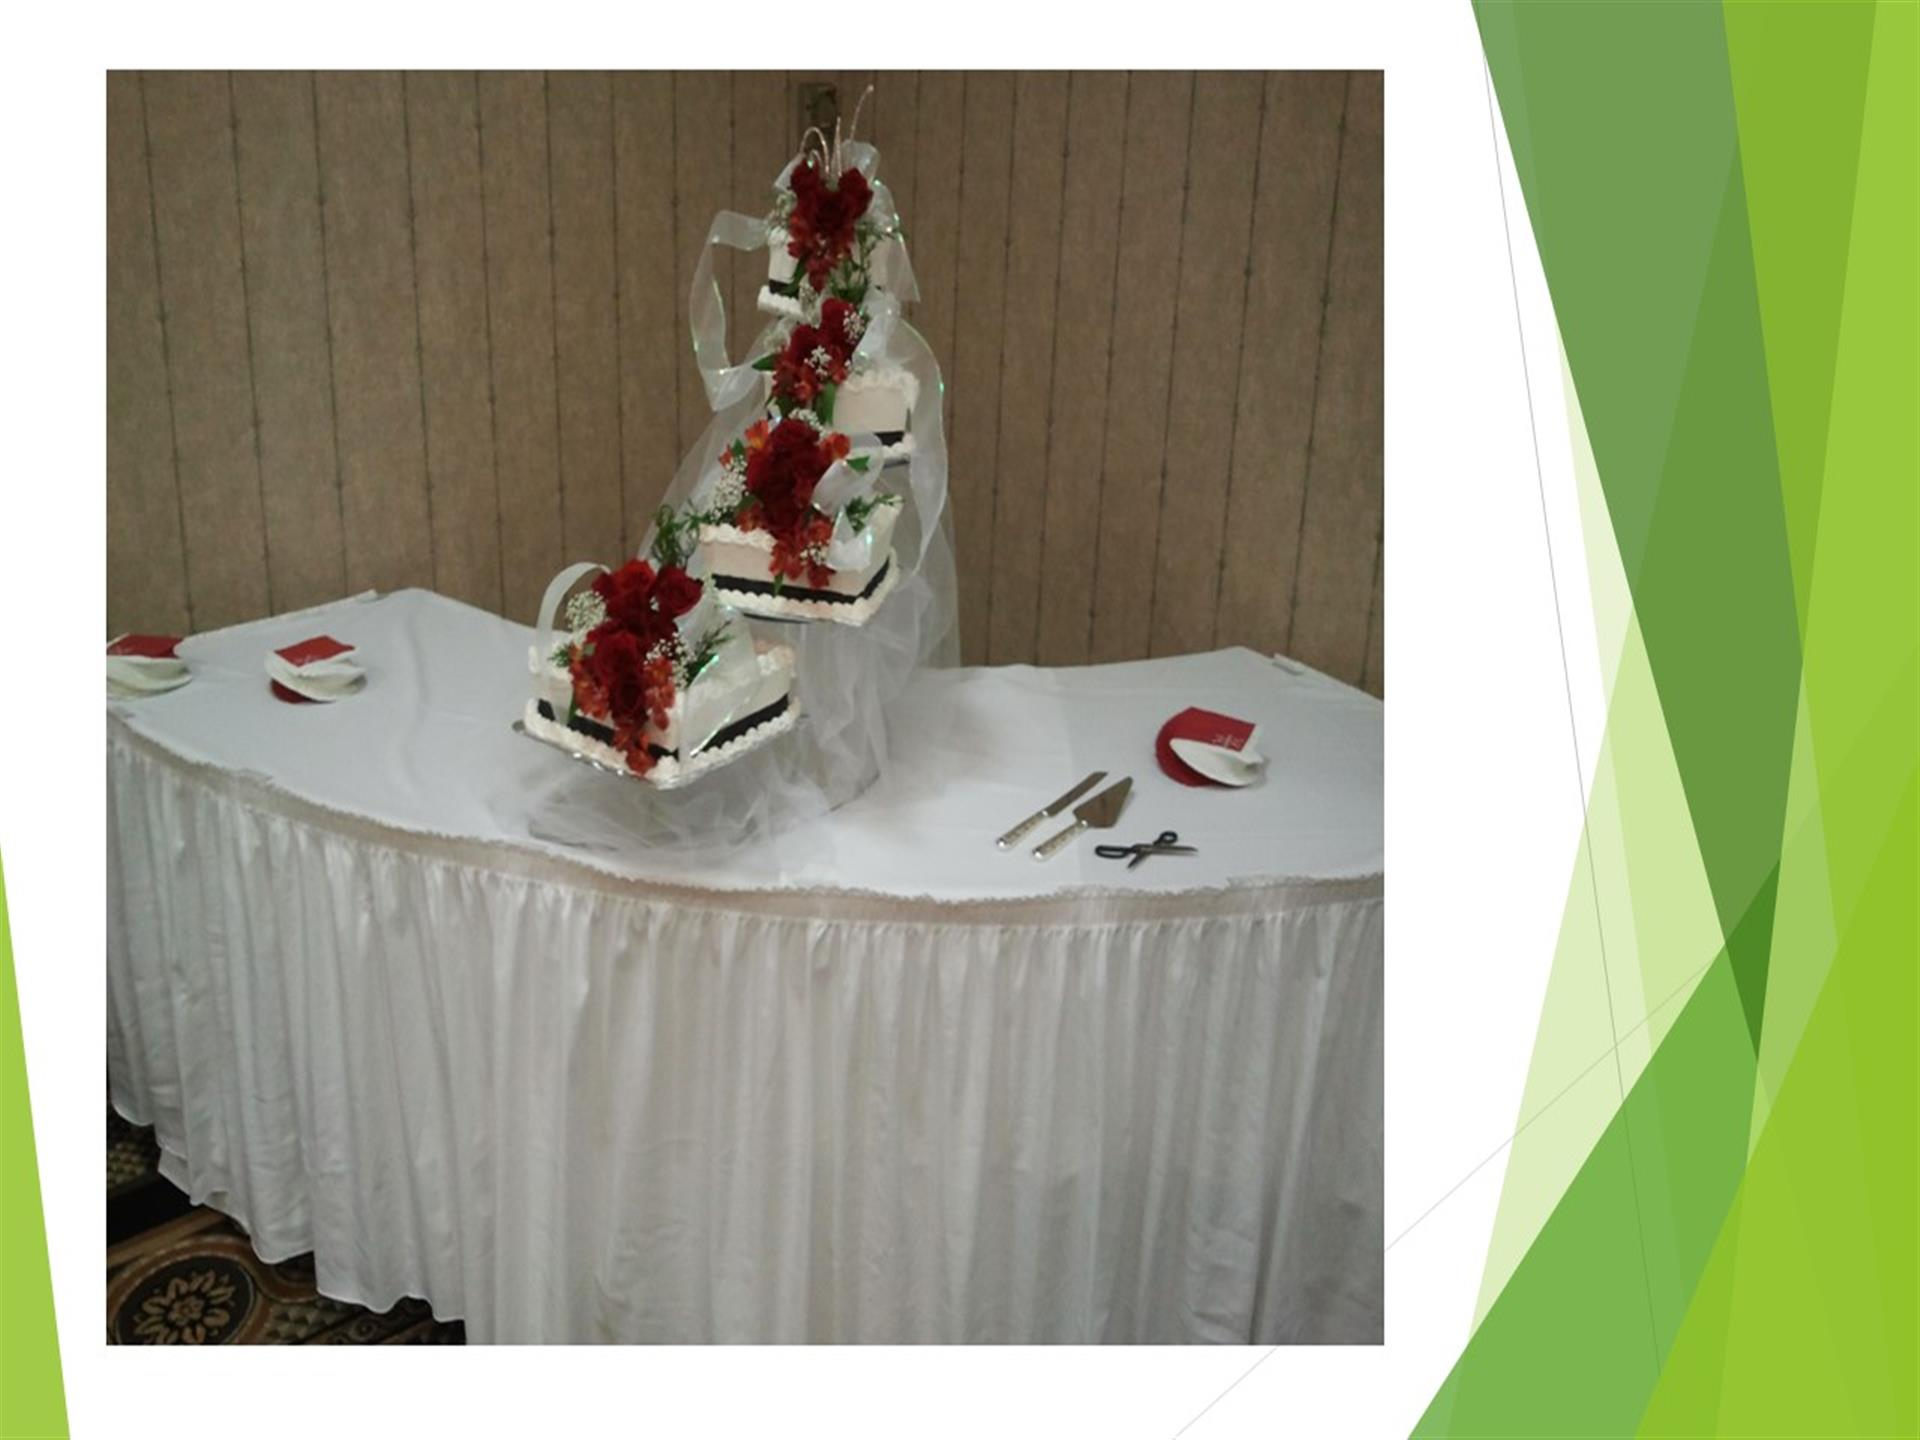 White cakes on tiered stand on white table